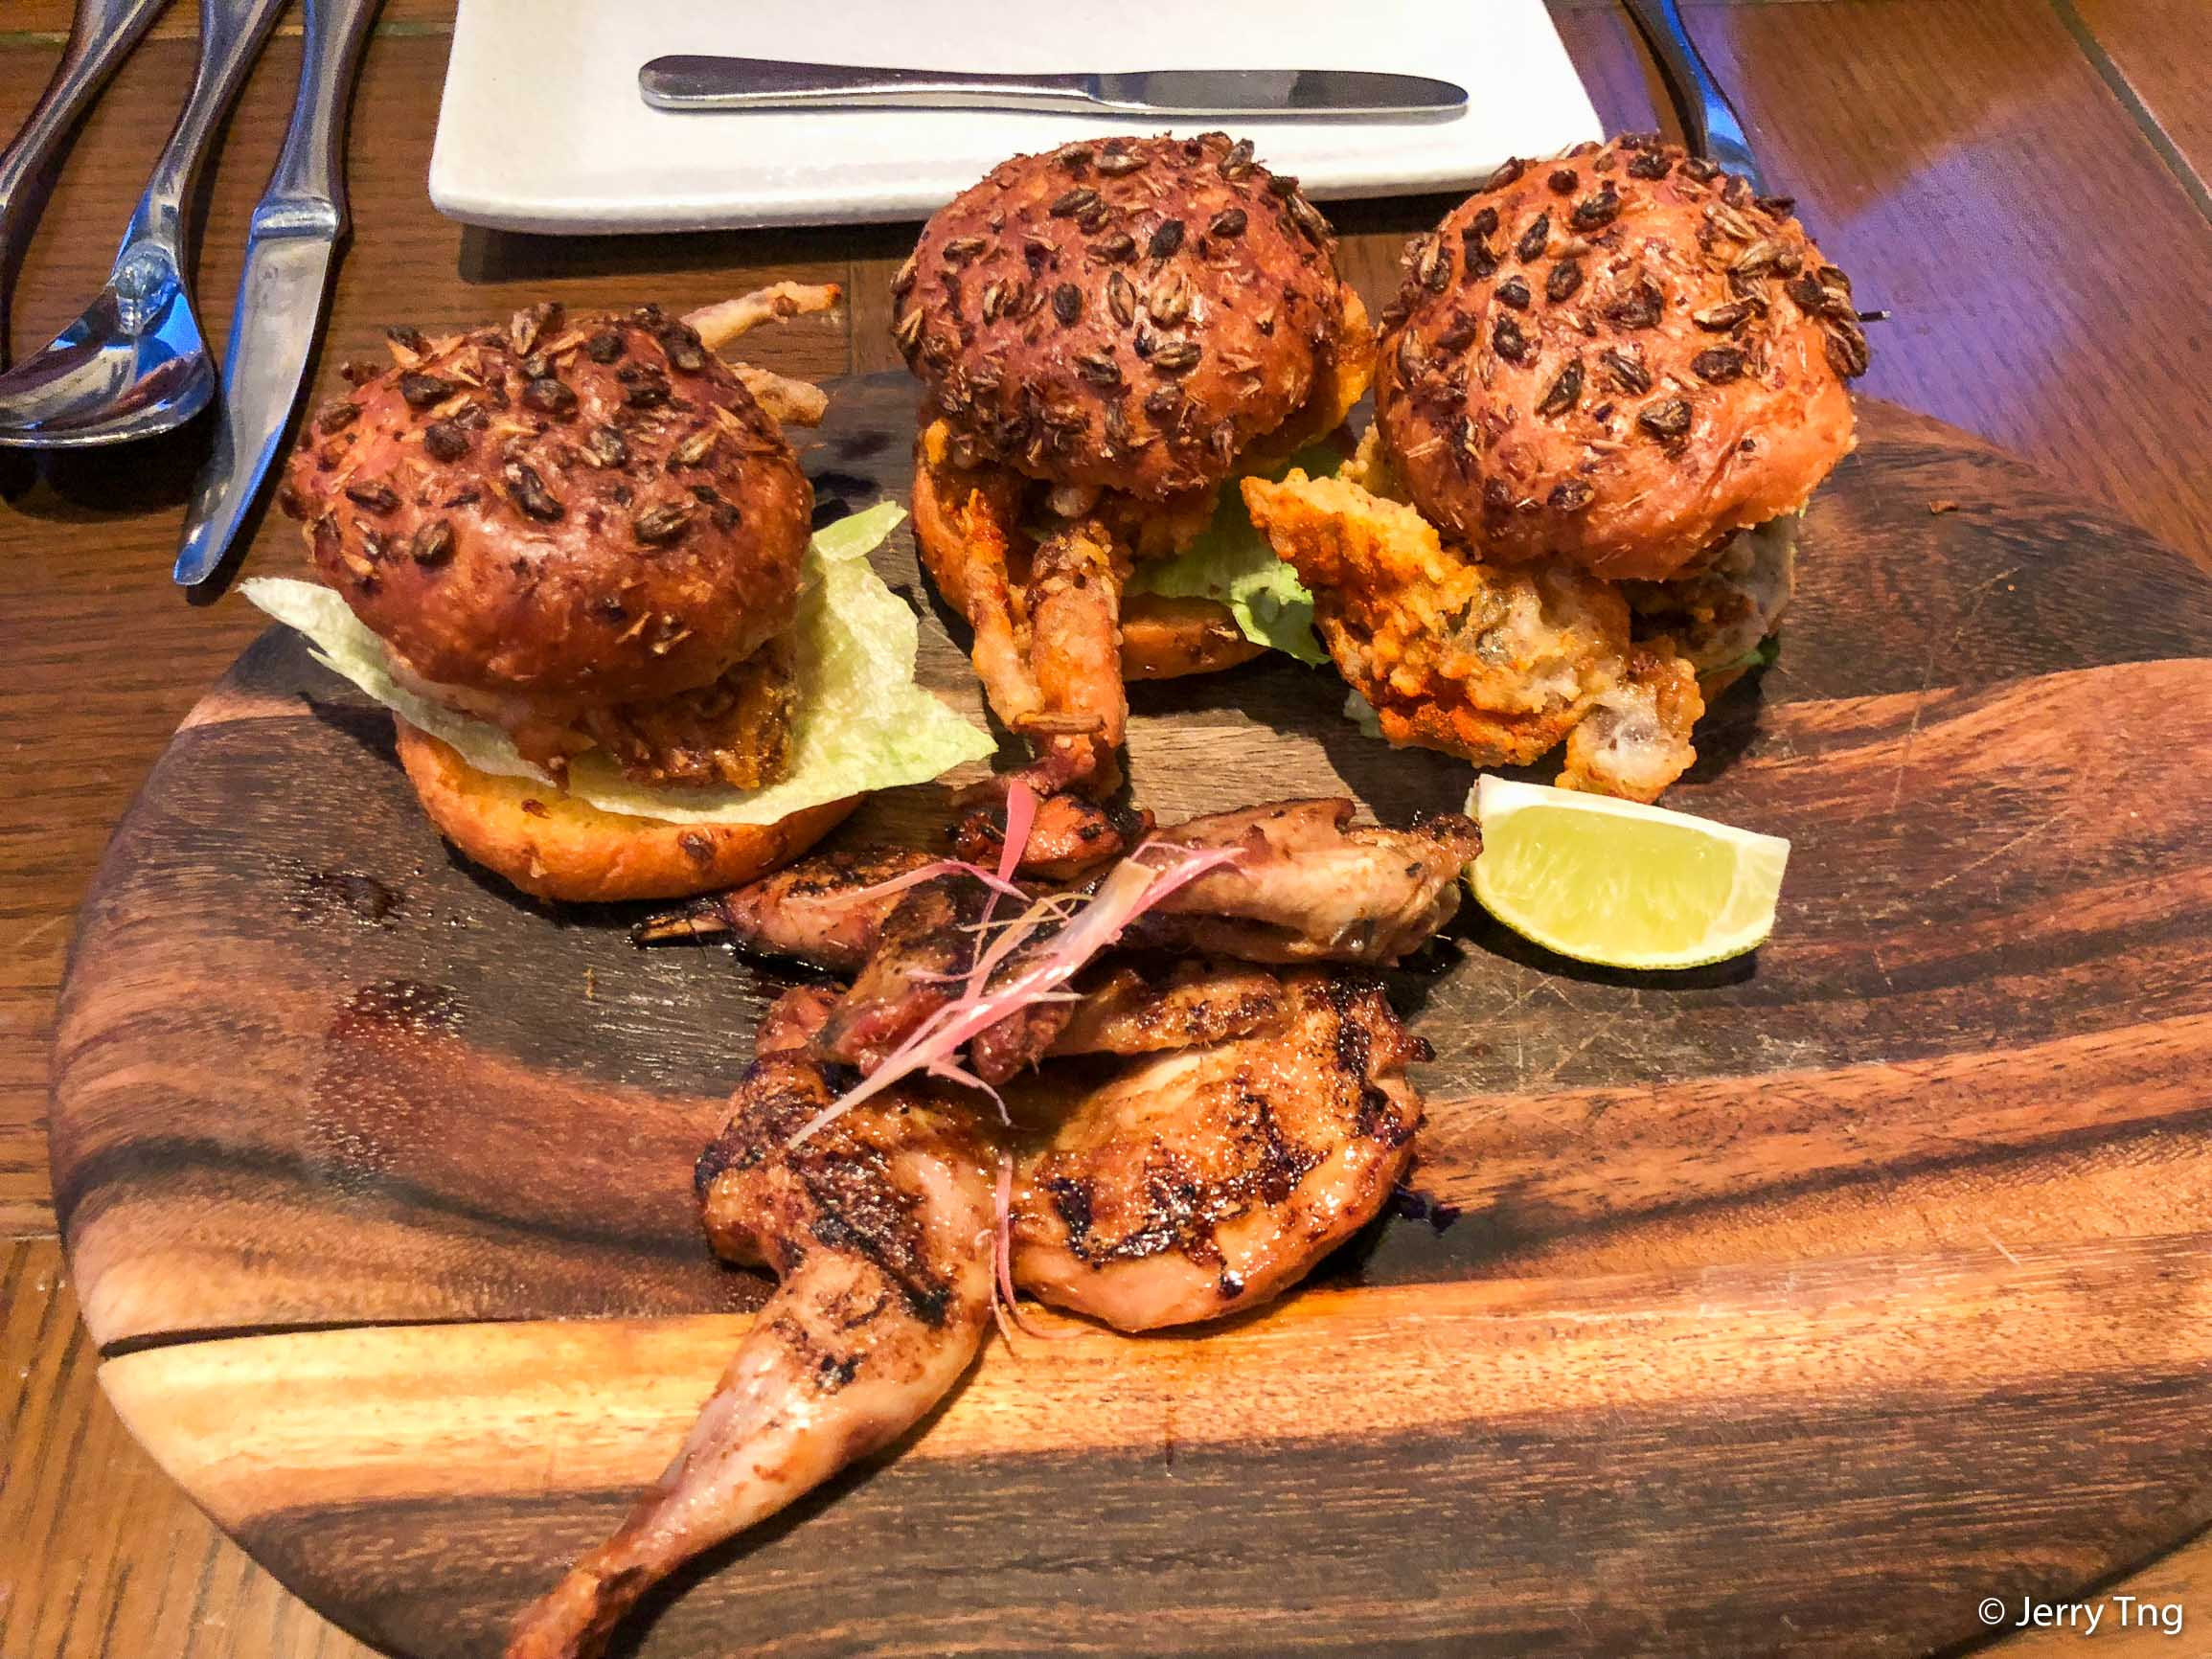 Chilli Soft Shell Brewery Sliders, Grilled Whole Quail with Ginger Flower